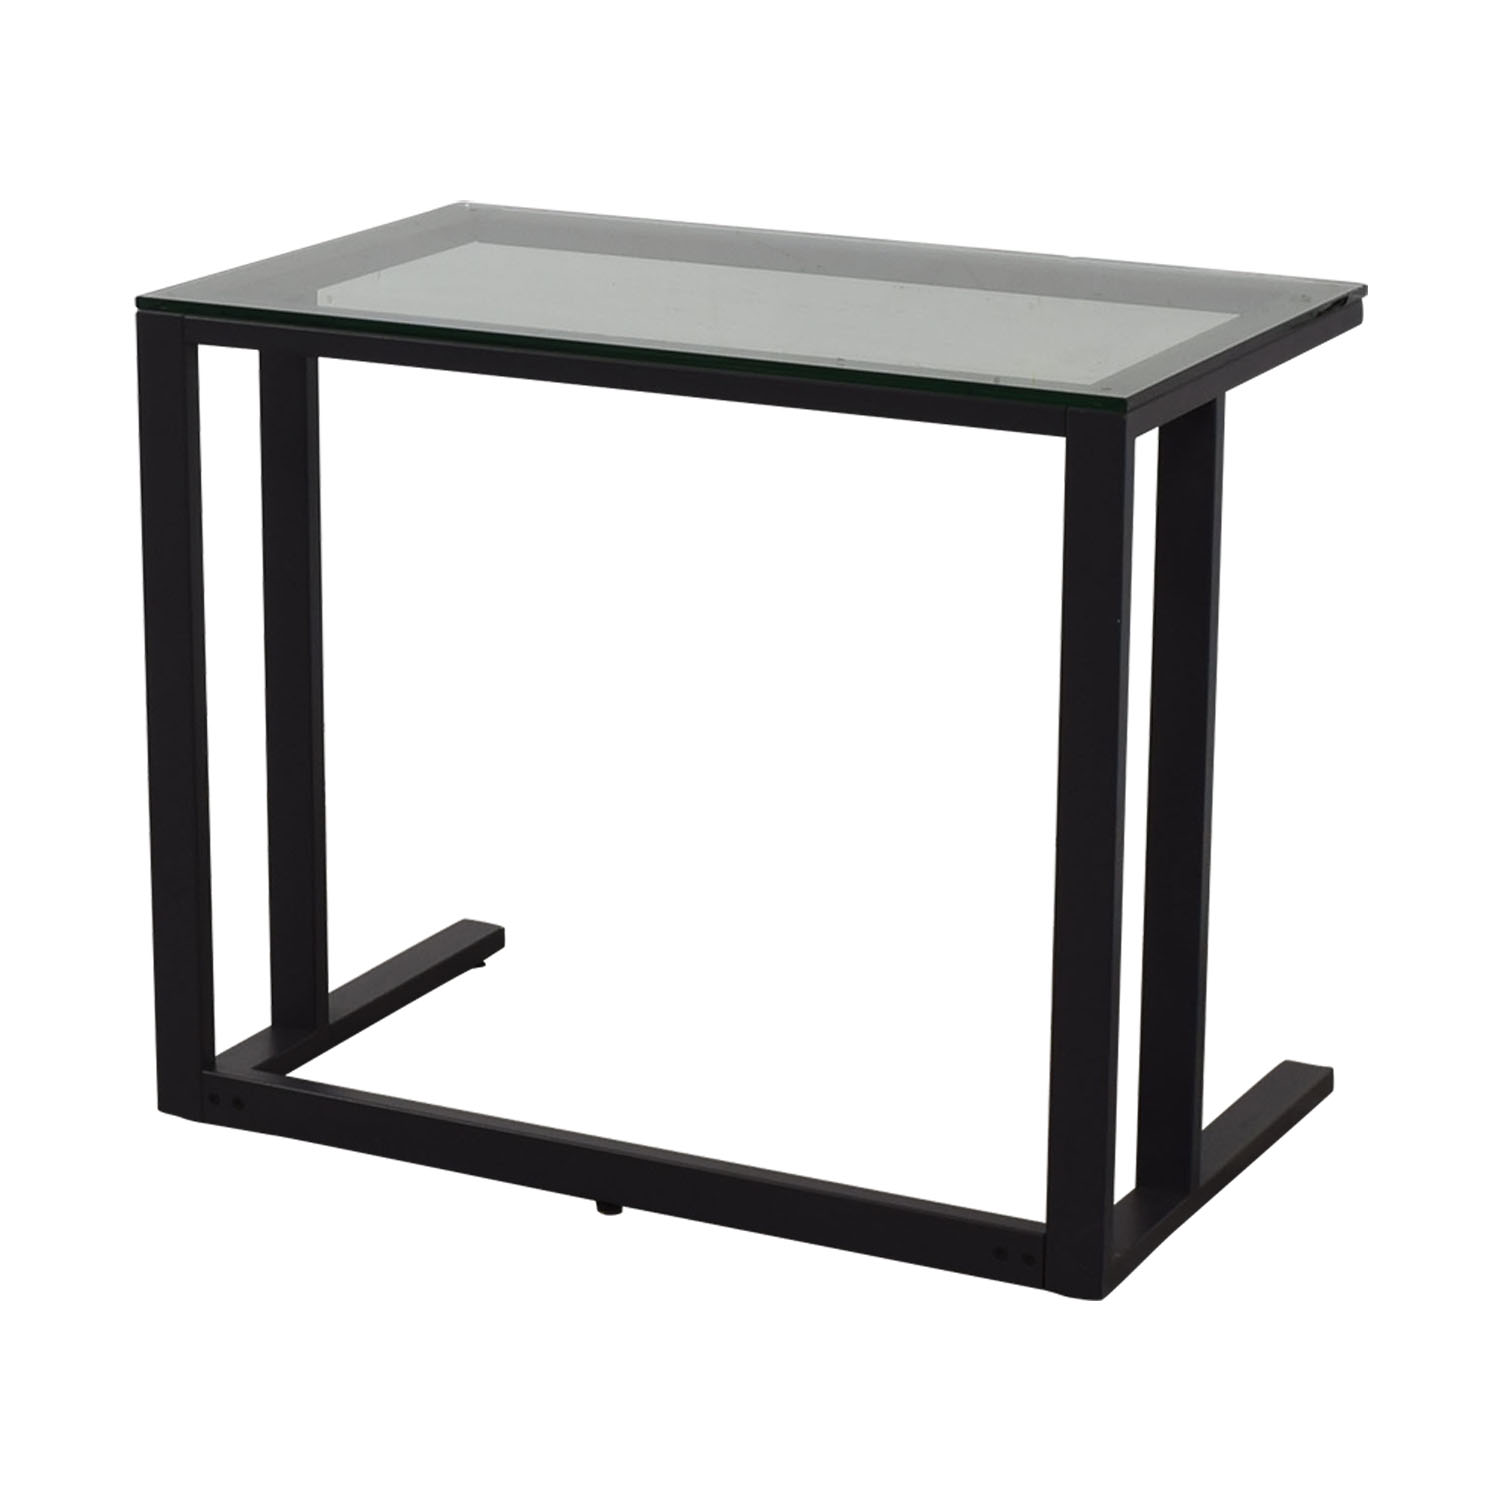 Crate & Barrel Crate & Barrel Glass Top Desk for sale